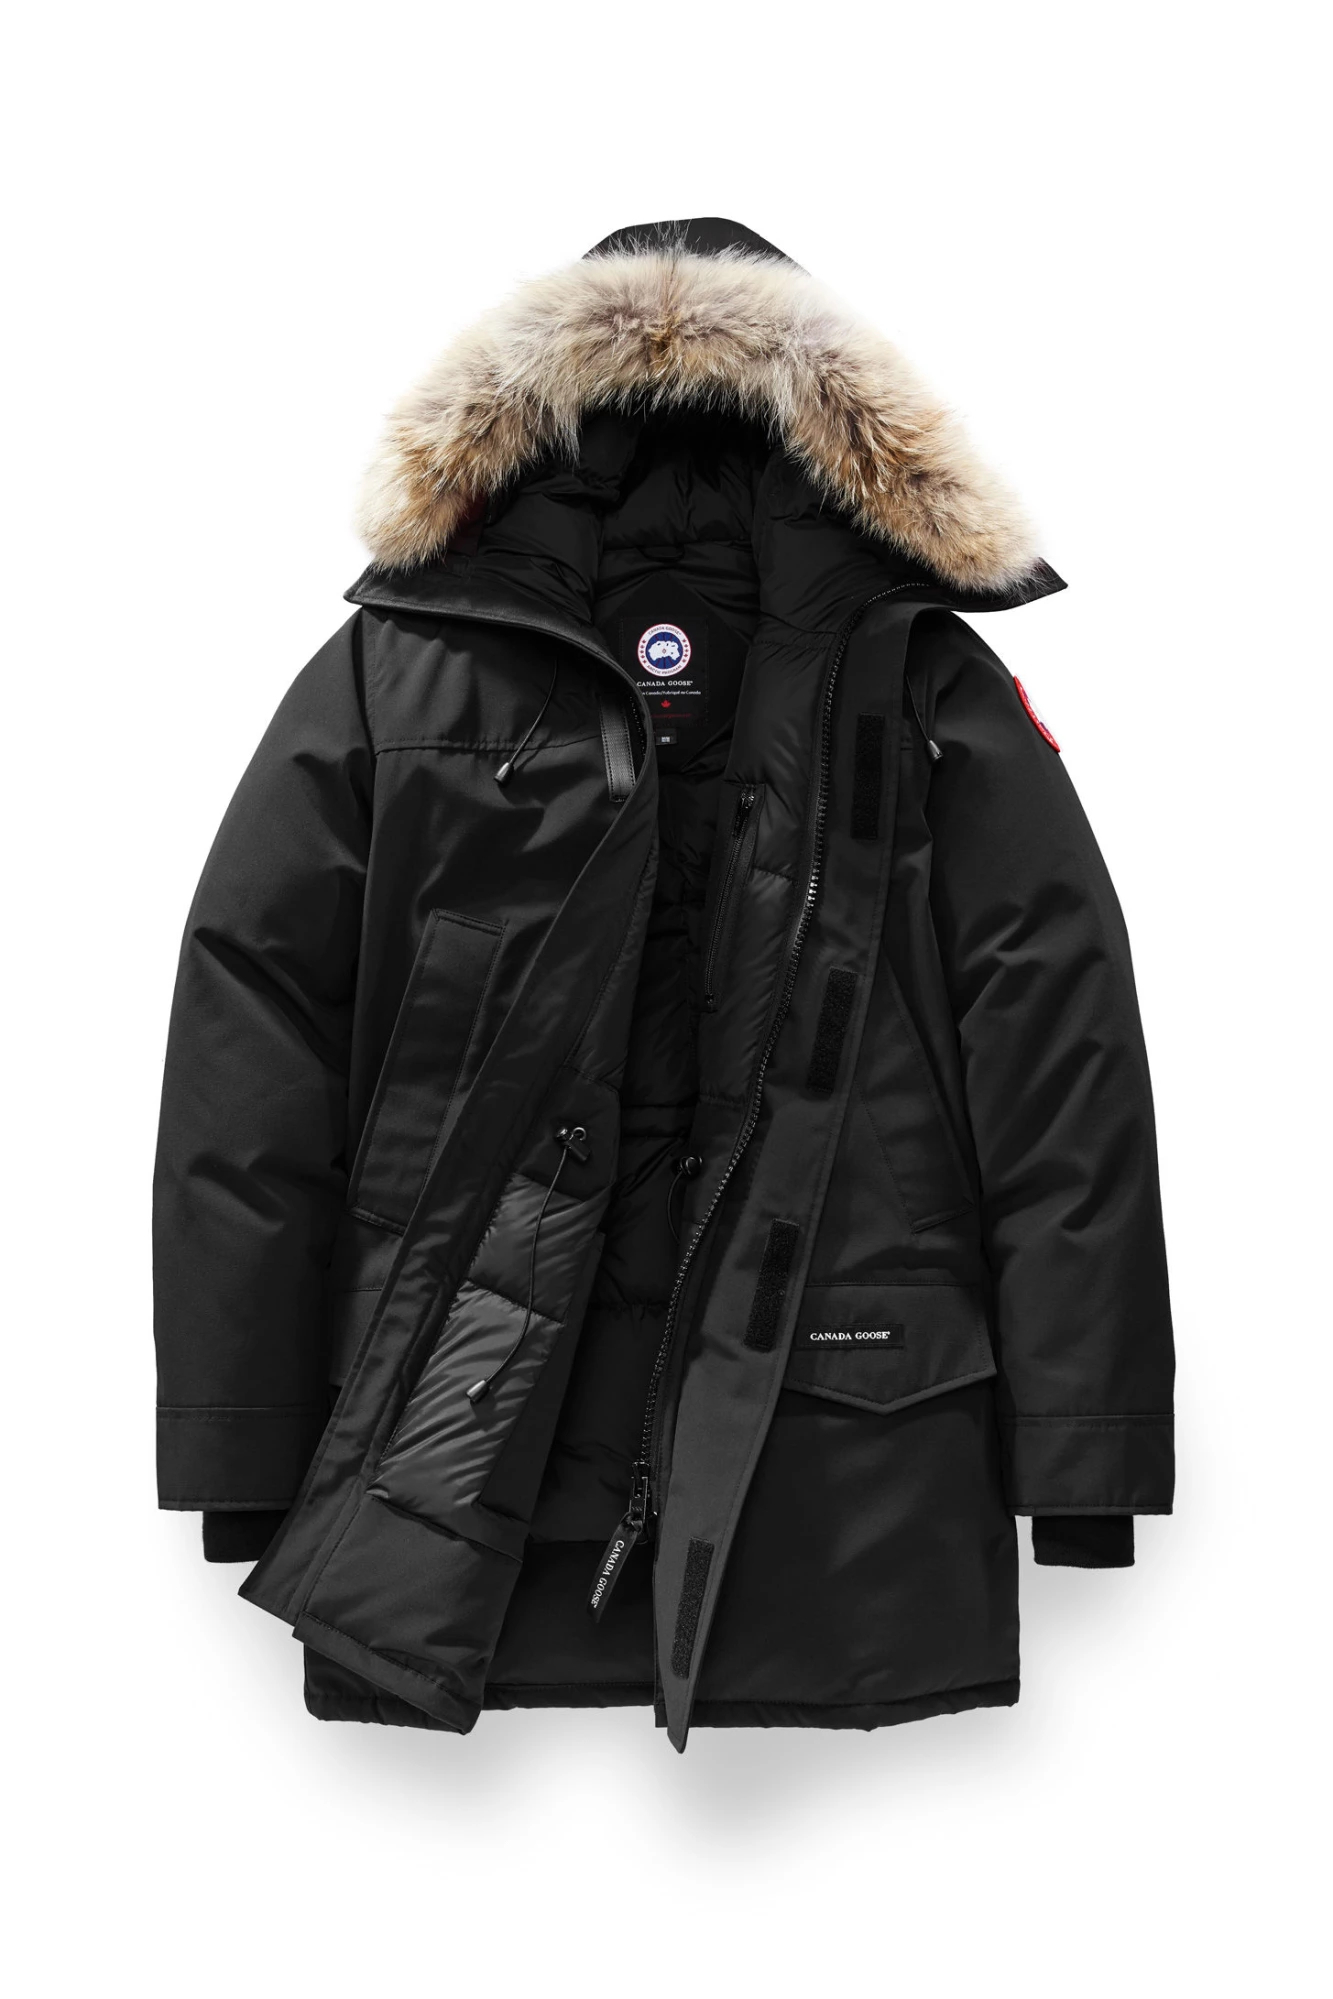 LANGFORD PARKA BLACK 2063